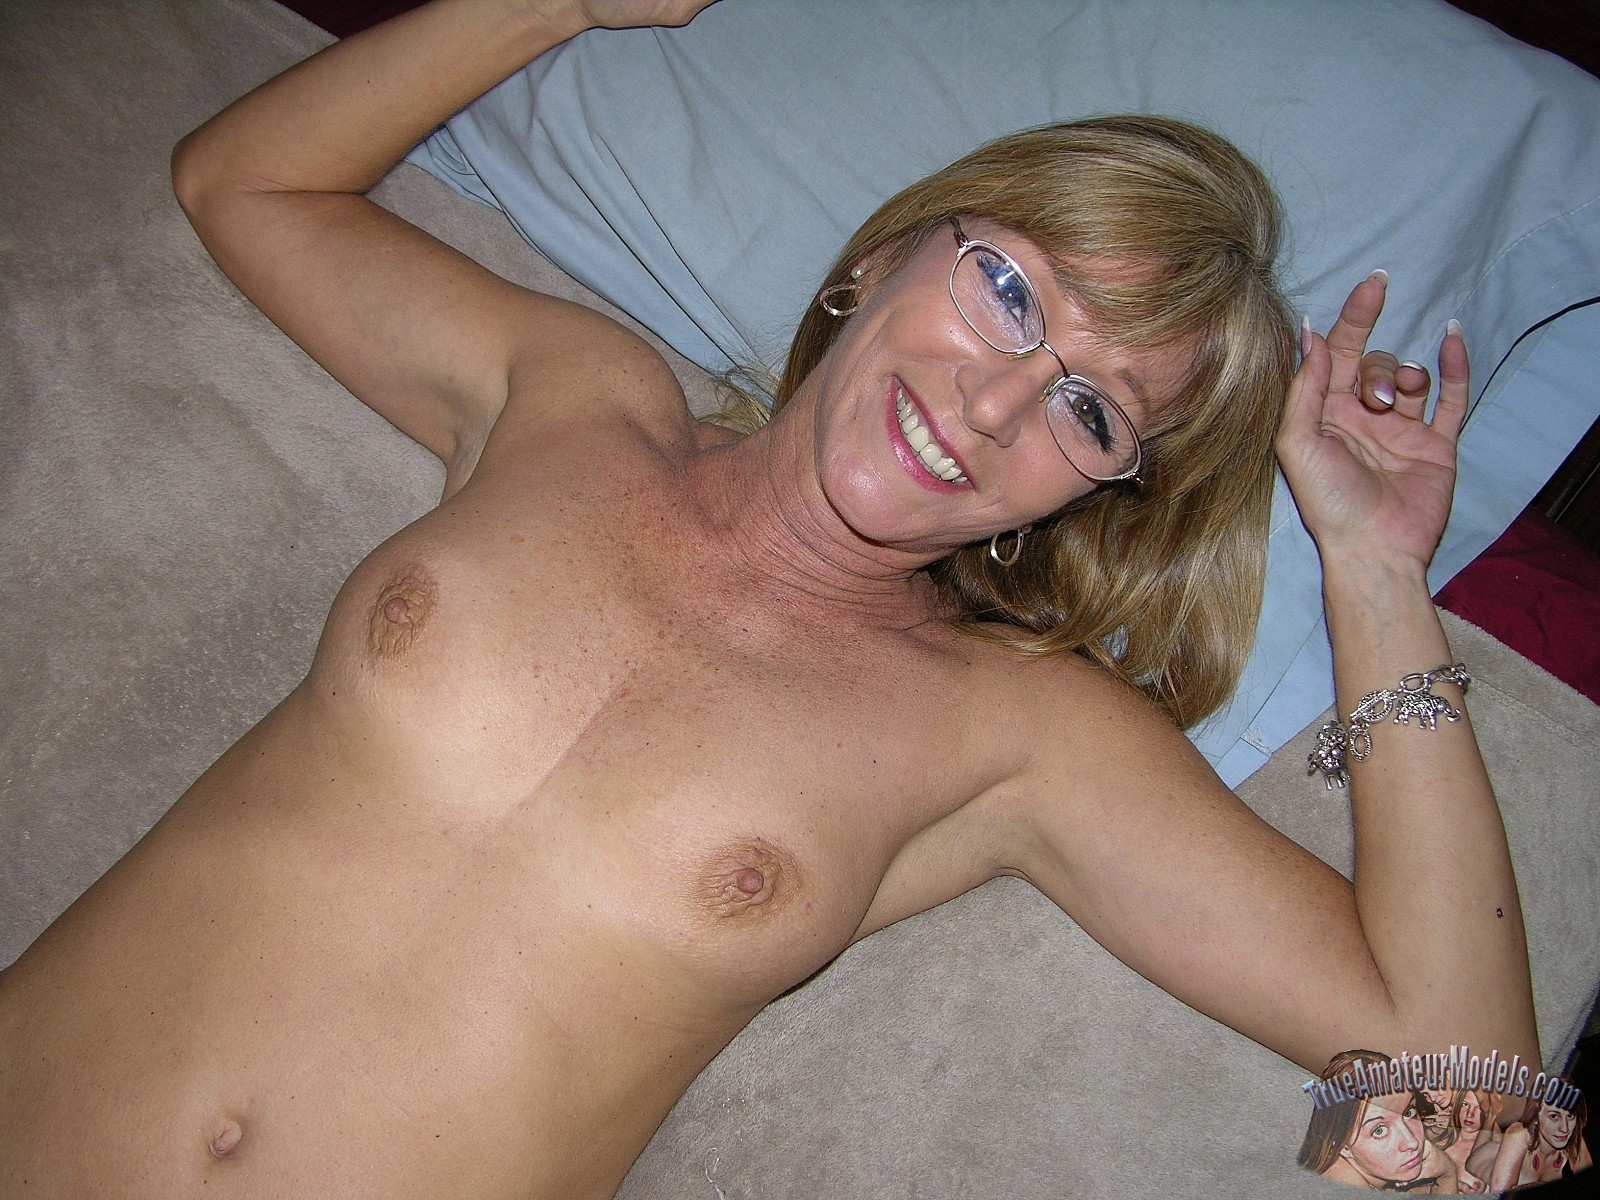 Nude blonde girls with glasses pussy